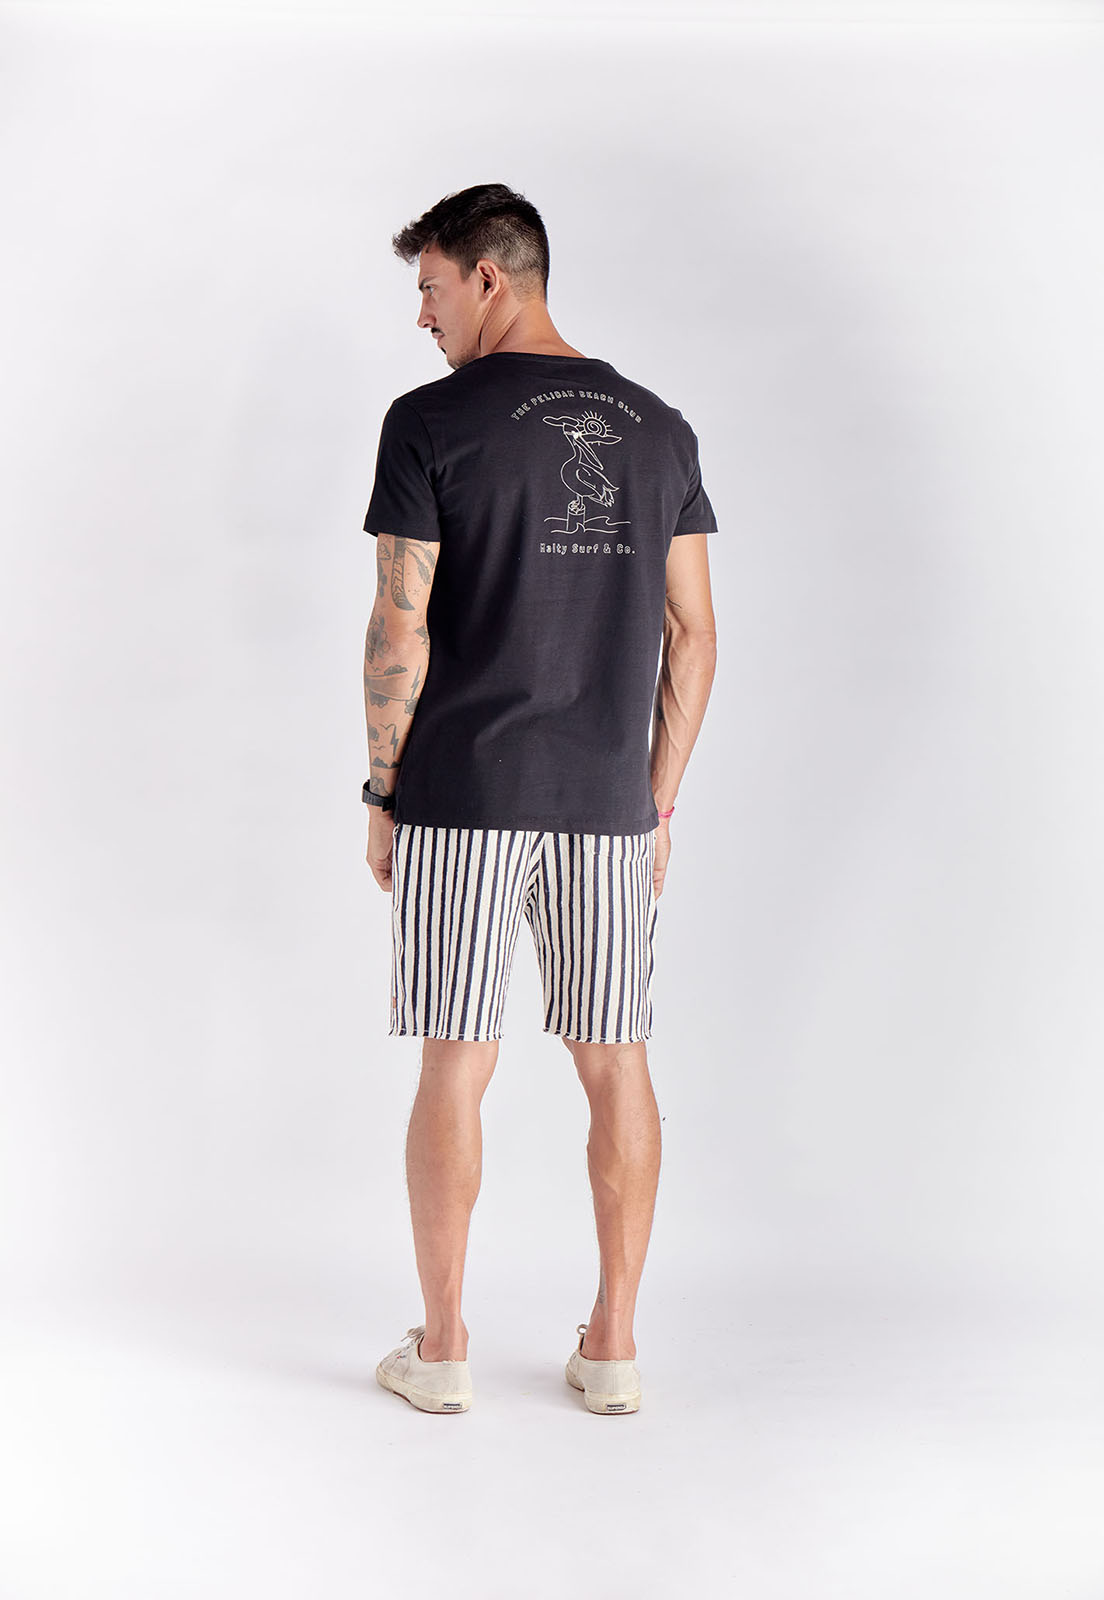 T-shirt Pelican Beach Preto Melty  - melty surf & Co.